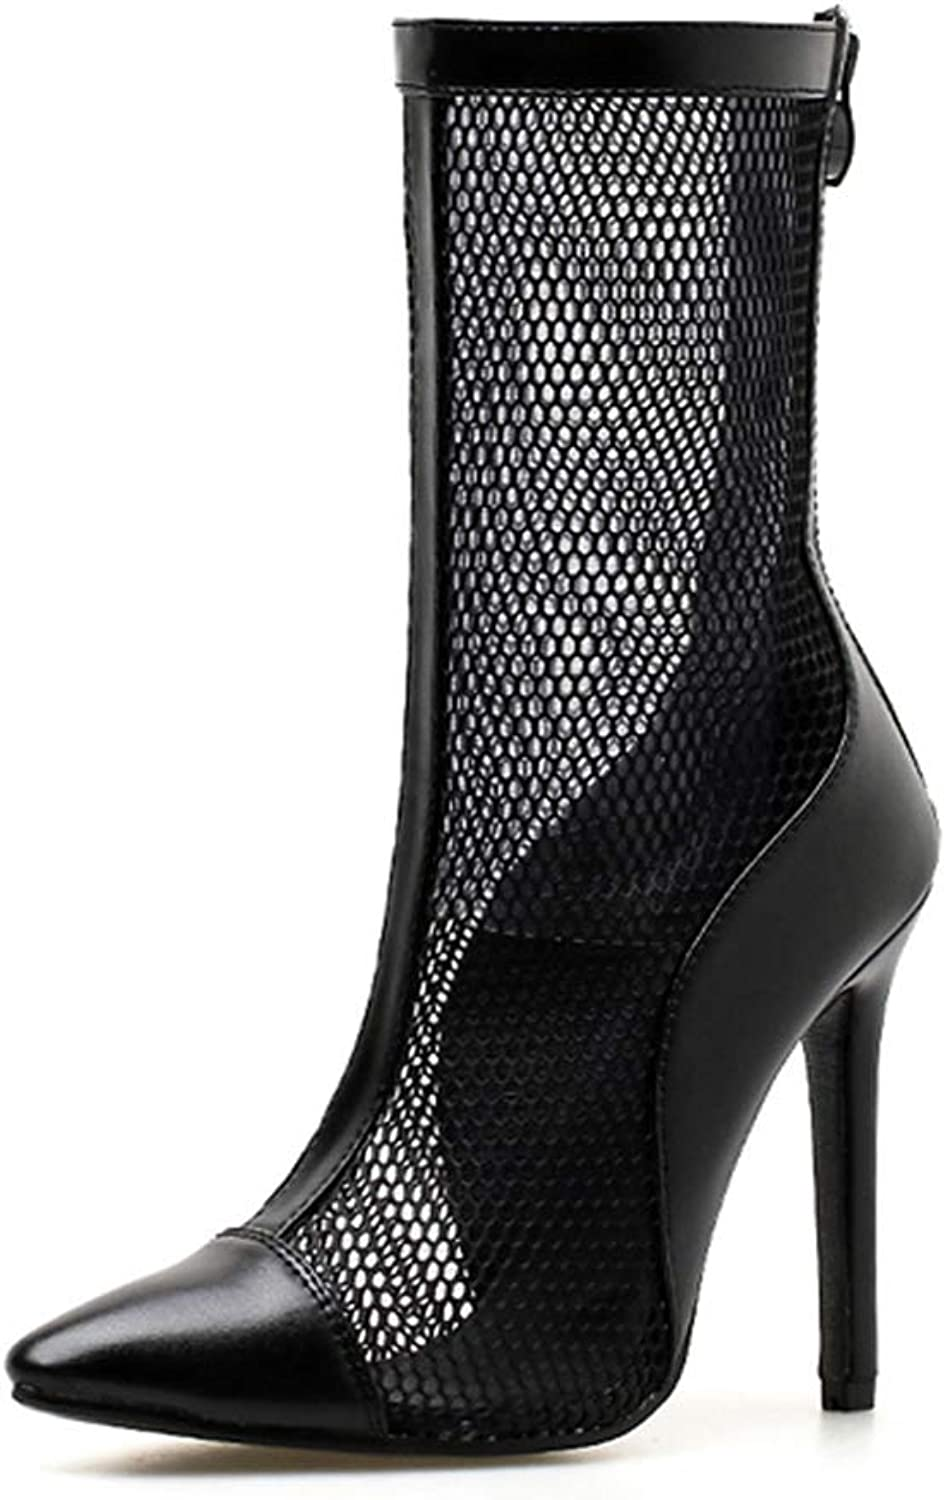 AVENBER Women Mid Calf Boots High Heels Sexy Stiletto Breathable Mesh Ladies Cool Riding Combat Round Toe shoes